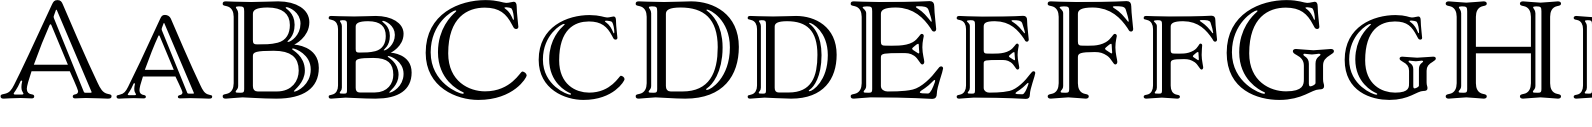 AdornS Engraved Font